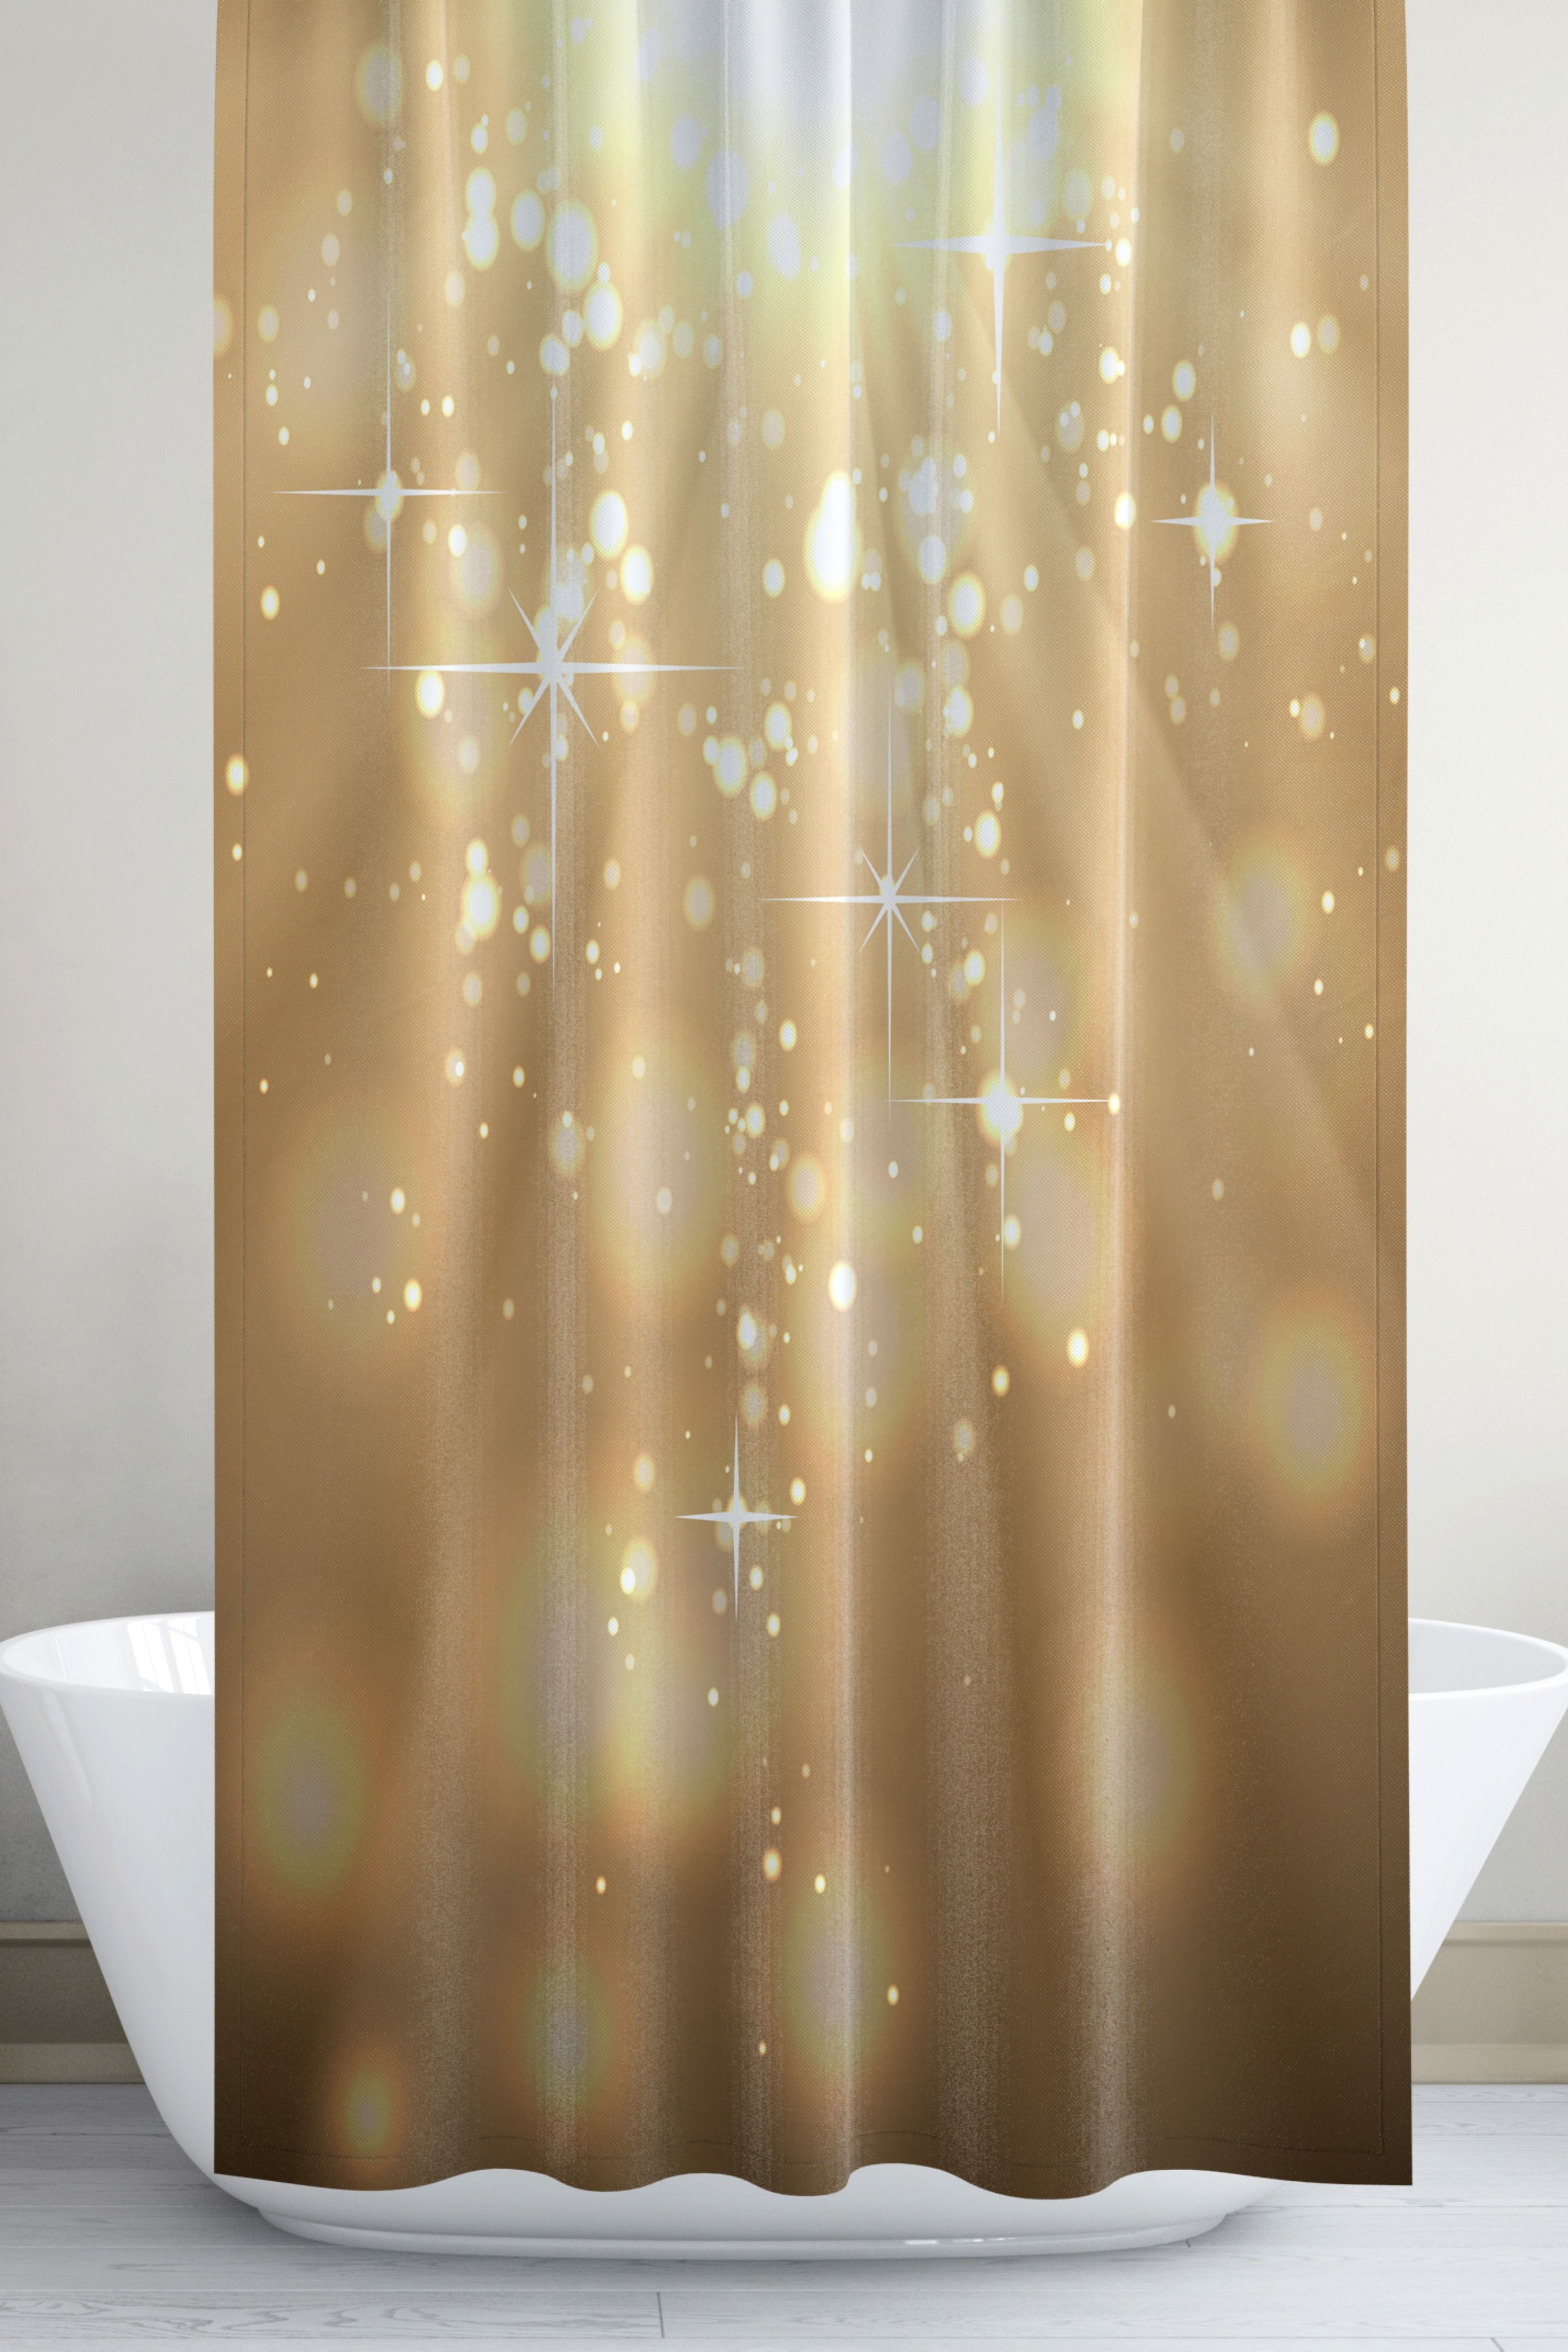 Sparkly Gold Shower Curtain Set With Bokeh Lights Retro Glam Girl